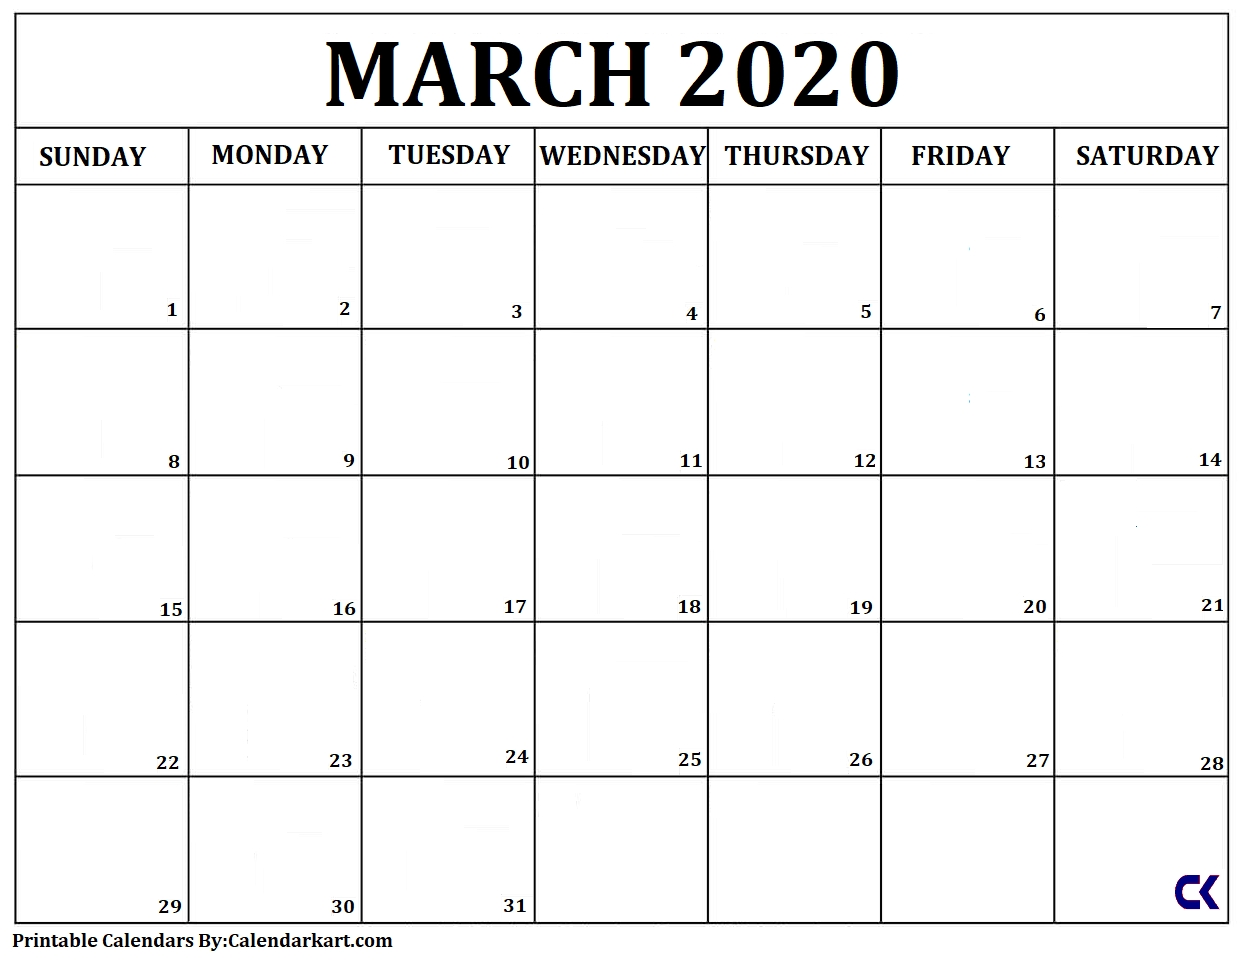 Free Printable Calendars 2020 And 2021: Monthly & Yearly within Large Box Calendar 2020 Printable